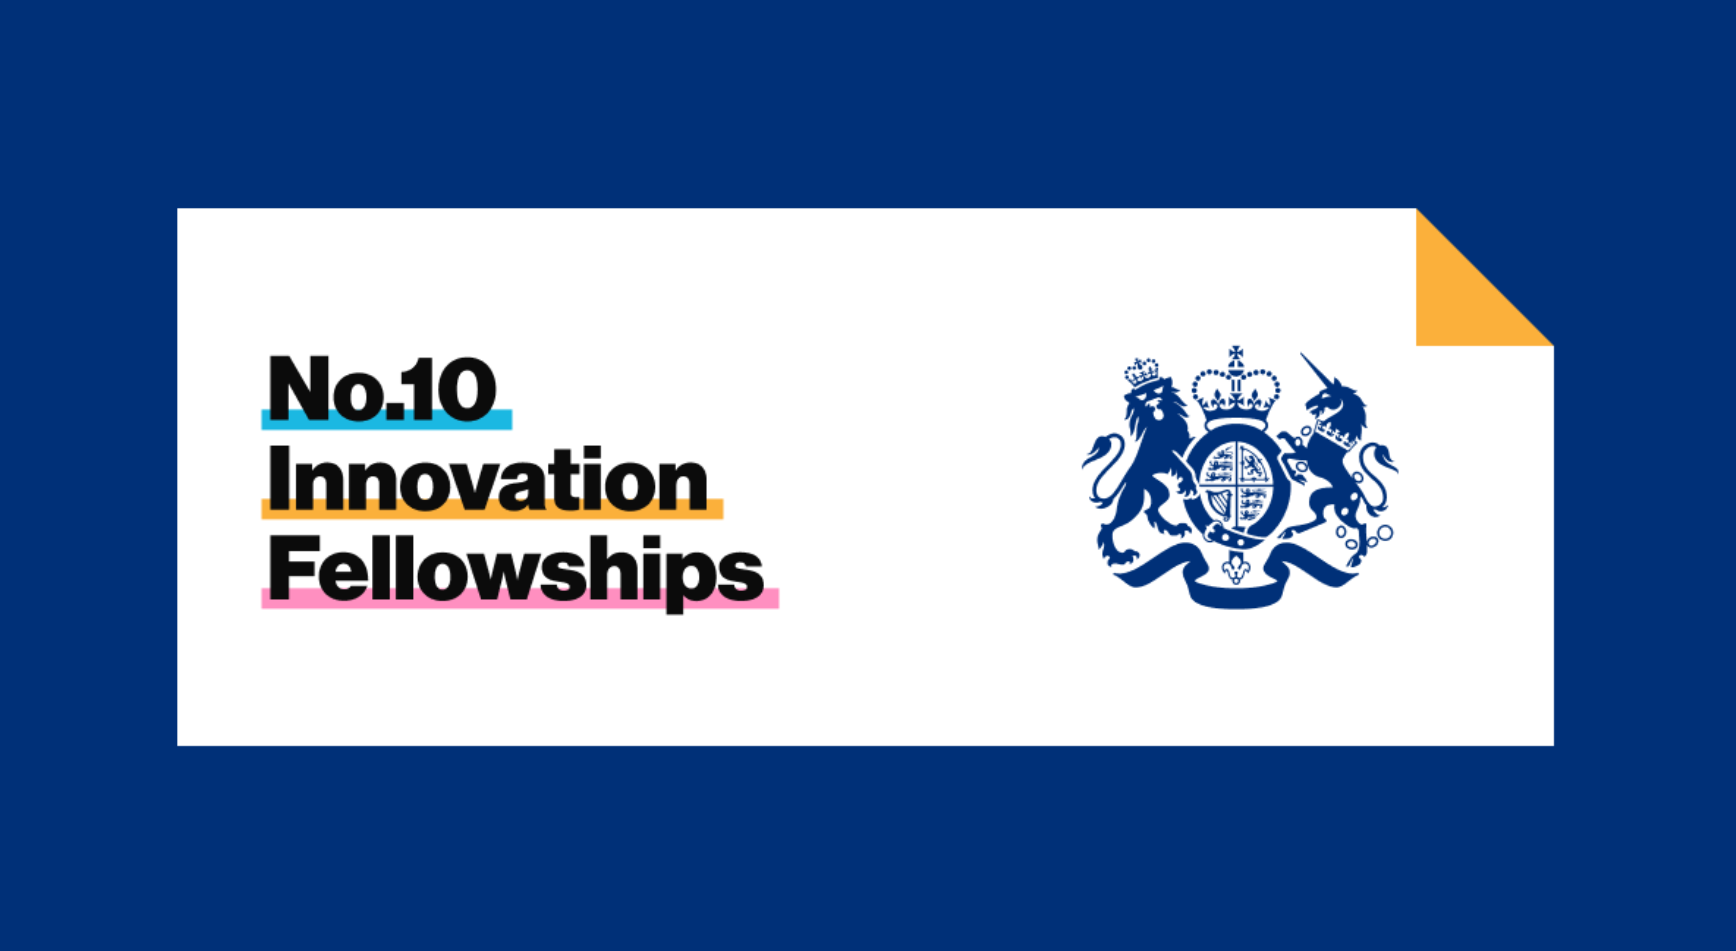 This is an image with the crown logo that says No.10 Innovation Fellowships